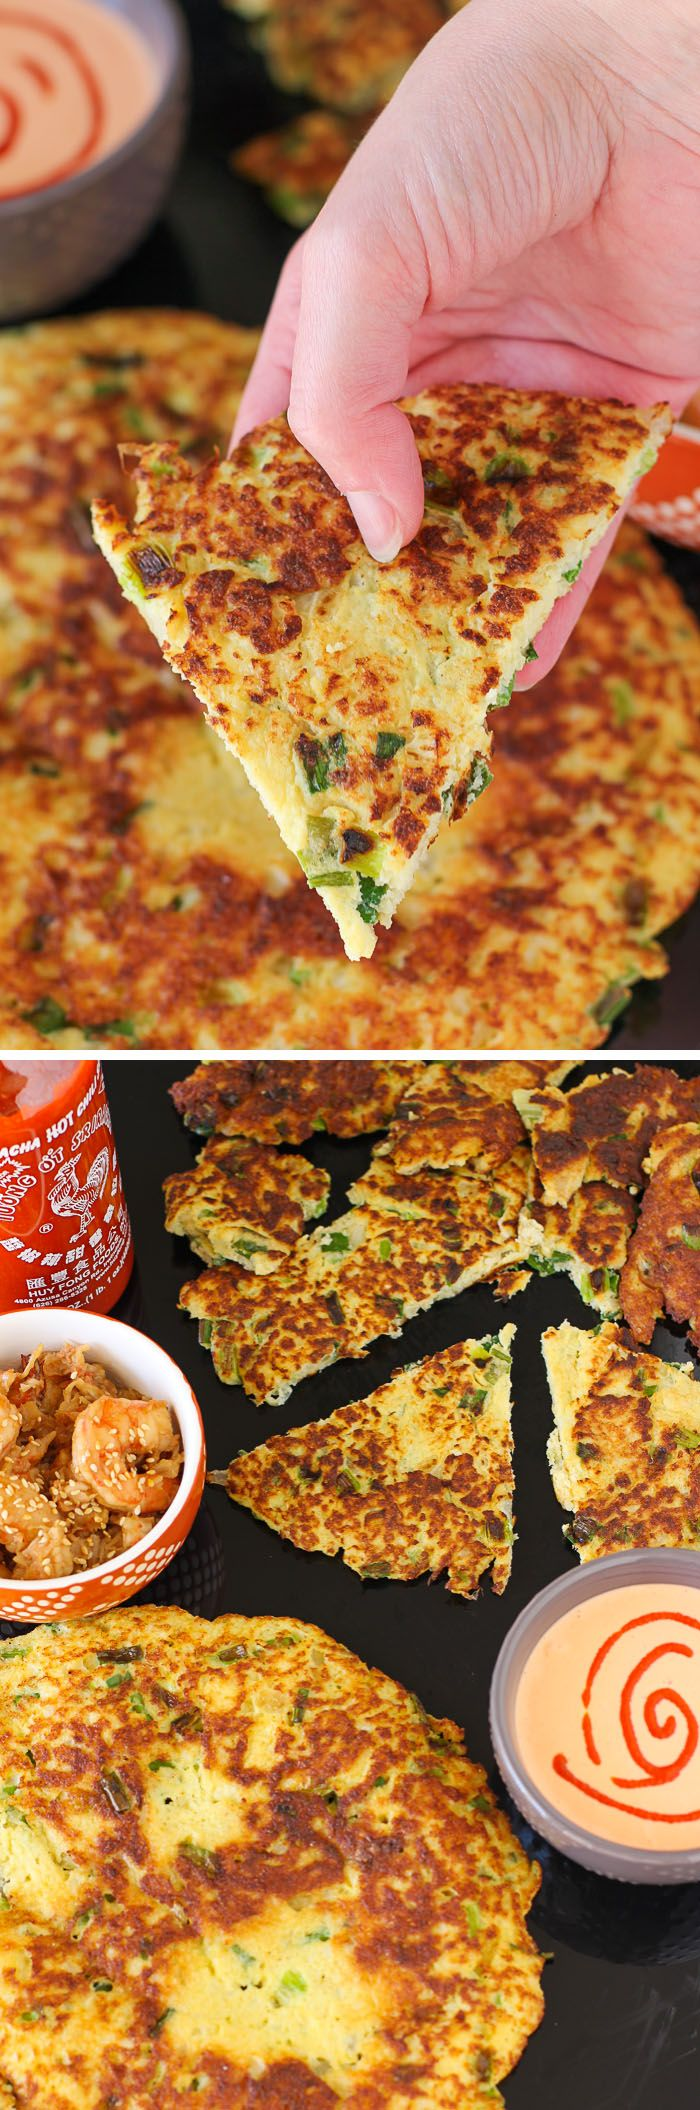 Paleo Scallion Pancake: An AWESOME delicious and healthy recipe! So good when served with sesame shrimp and Sriracha aioli. Must-make! #paleo #grainfree #glutenfree